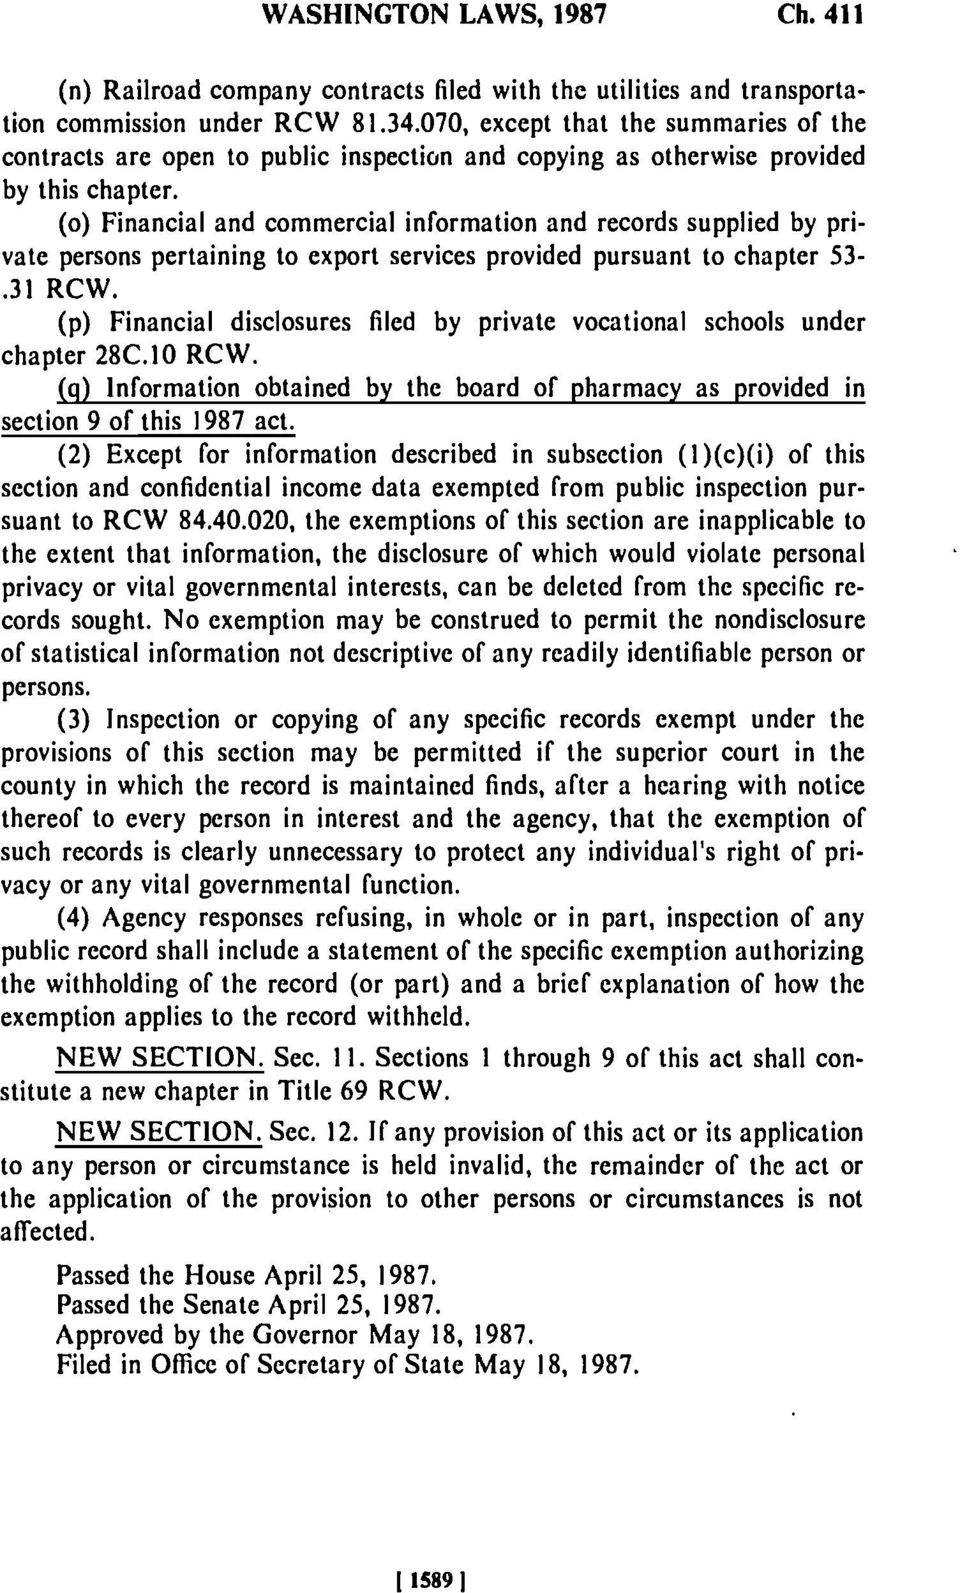 (o) Financial and commercial information and records supplied by private persons pertaining to export services provided pursuant to chapter 53-.31 RCW.